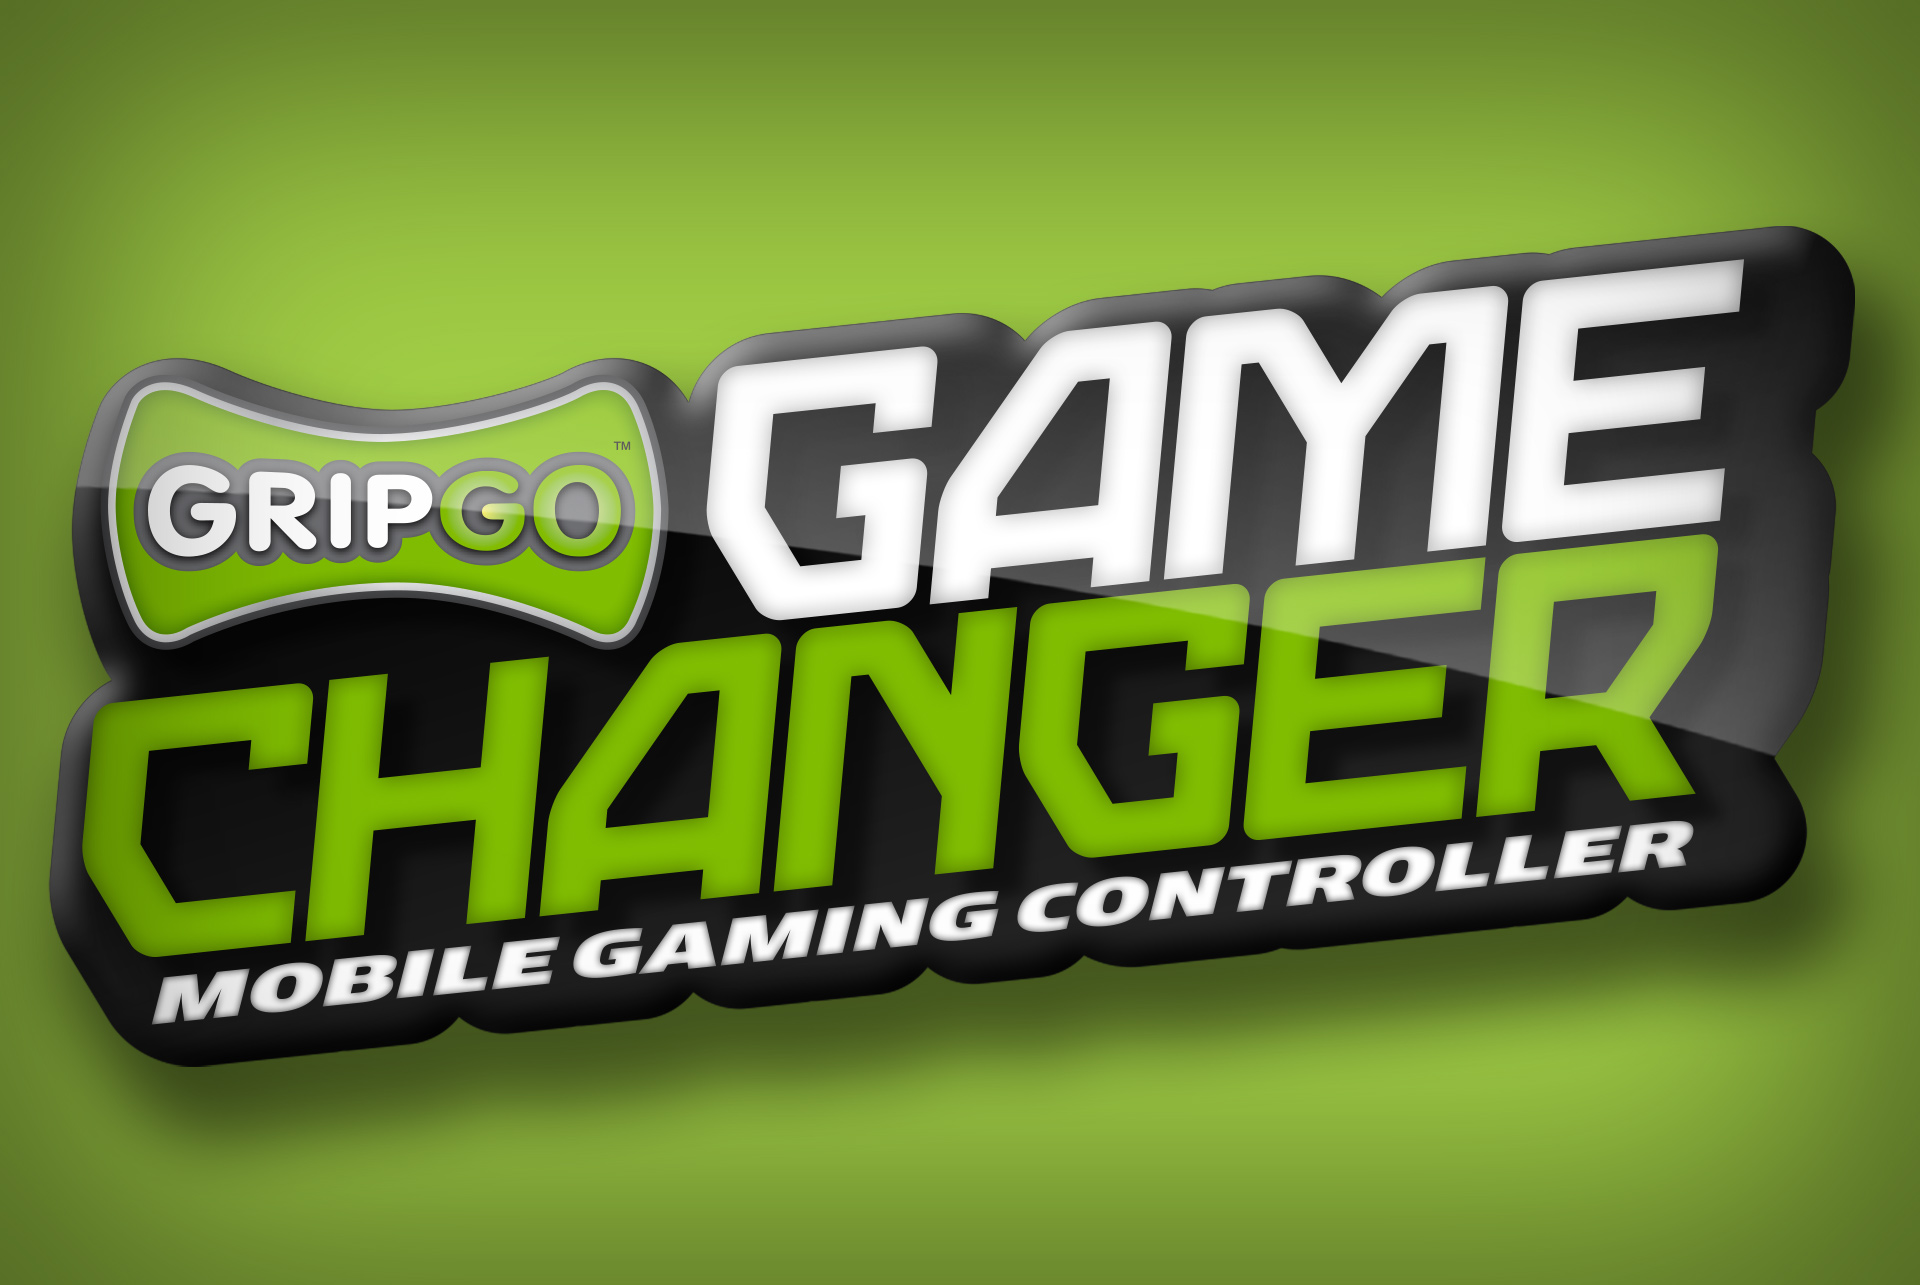 GameChanger™